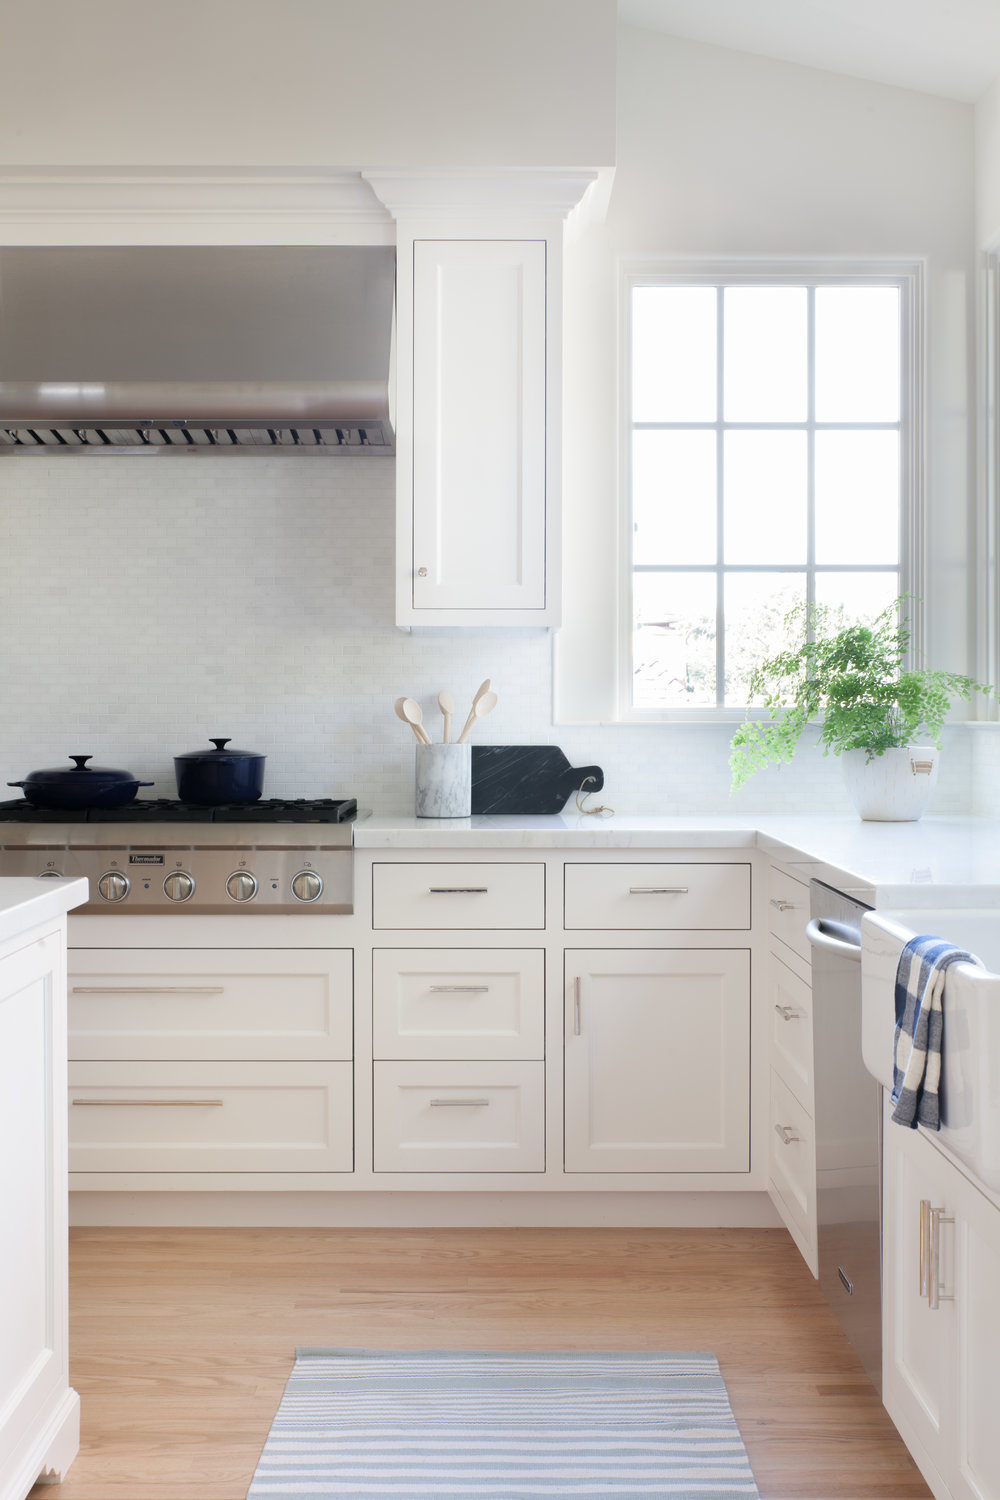 megan bachmann interiors white kitchen stove.jpg